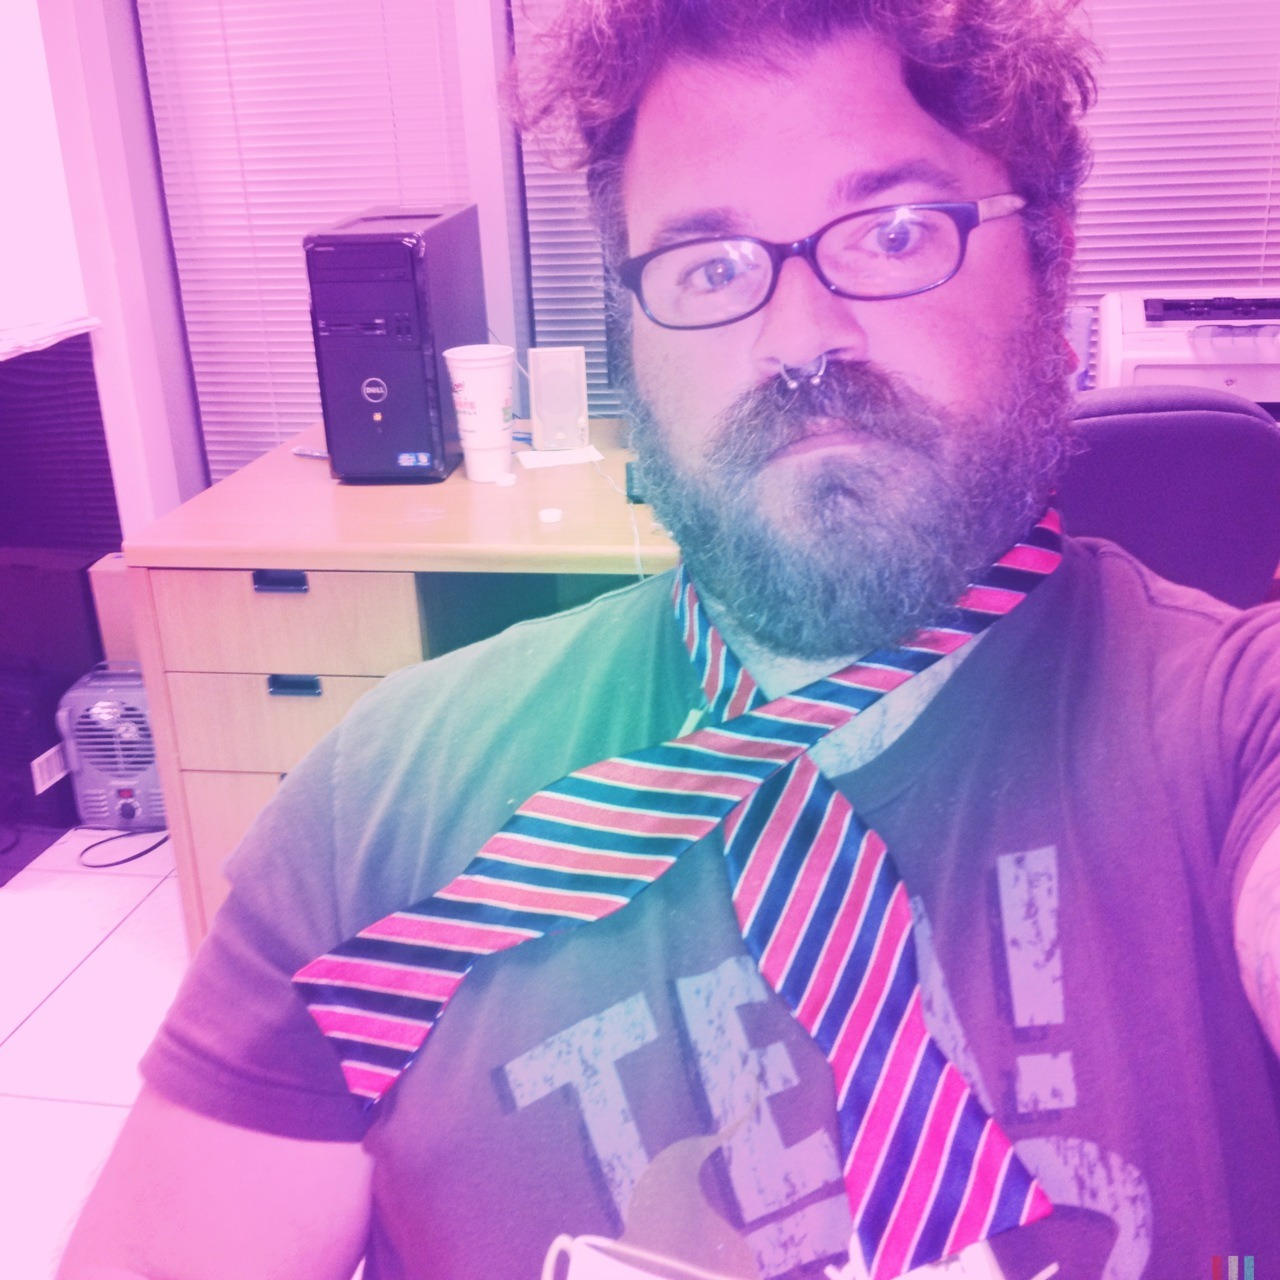 Bowties may be cool, but they are a bitch to learn how to tie! Adler 9009 Lens, Blanko Freedom13 Film, Berry Pop Flash, Taken with Hipstamatic